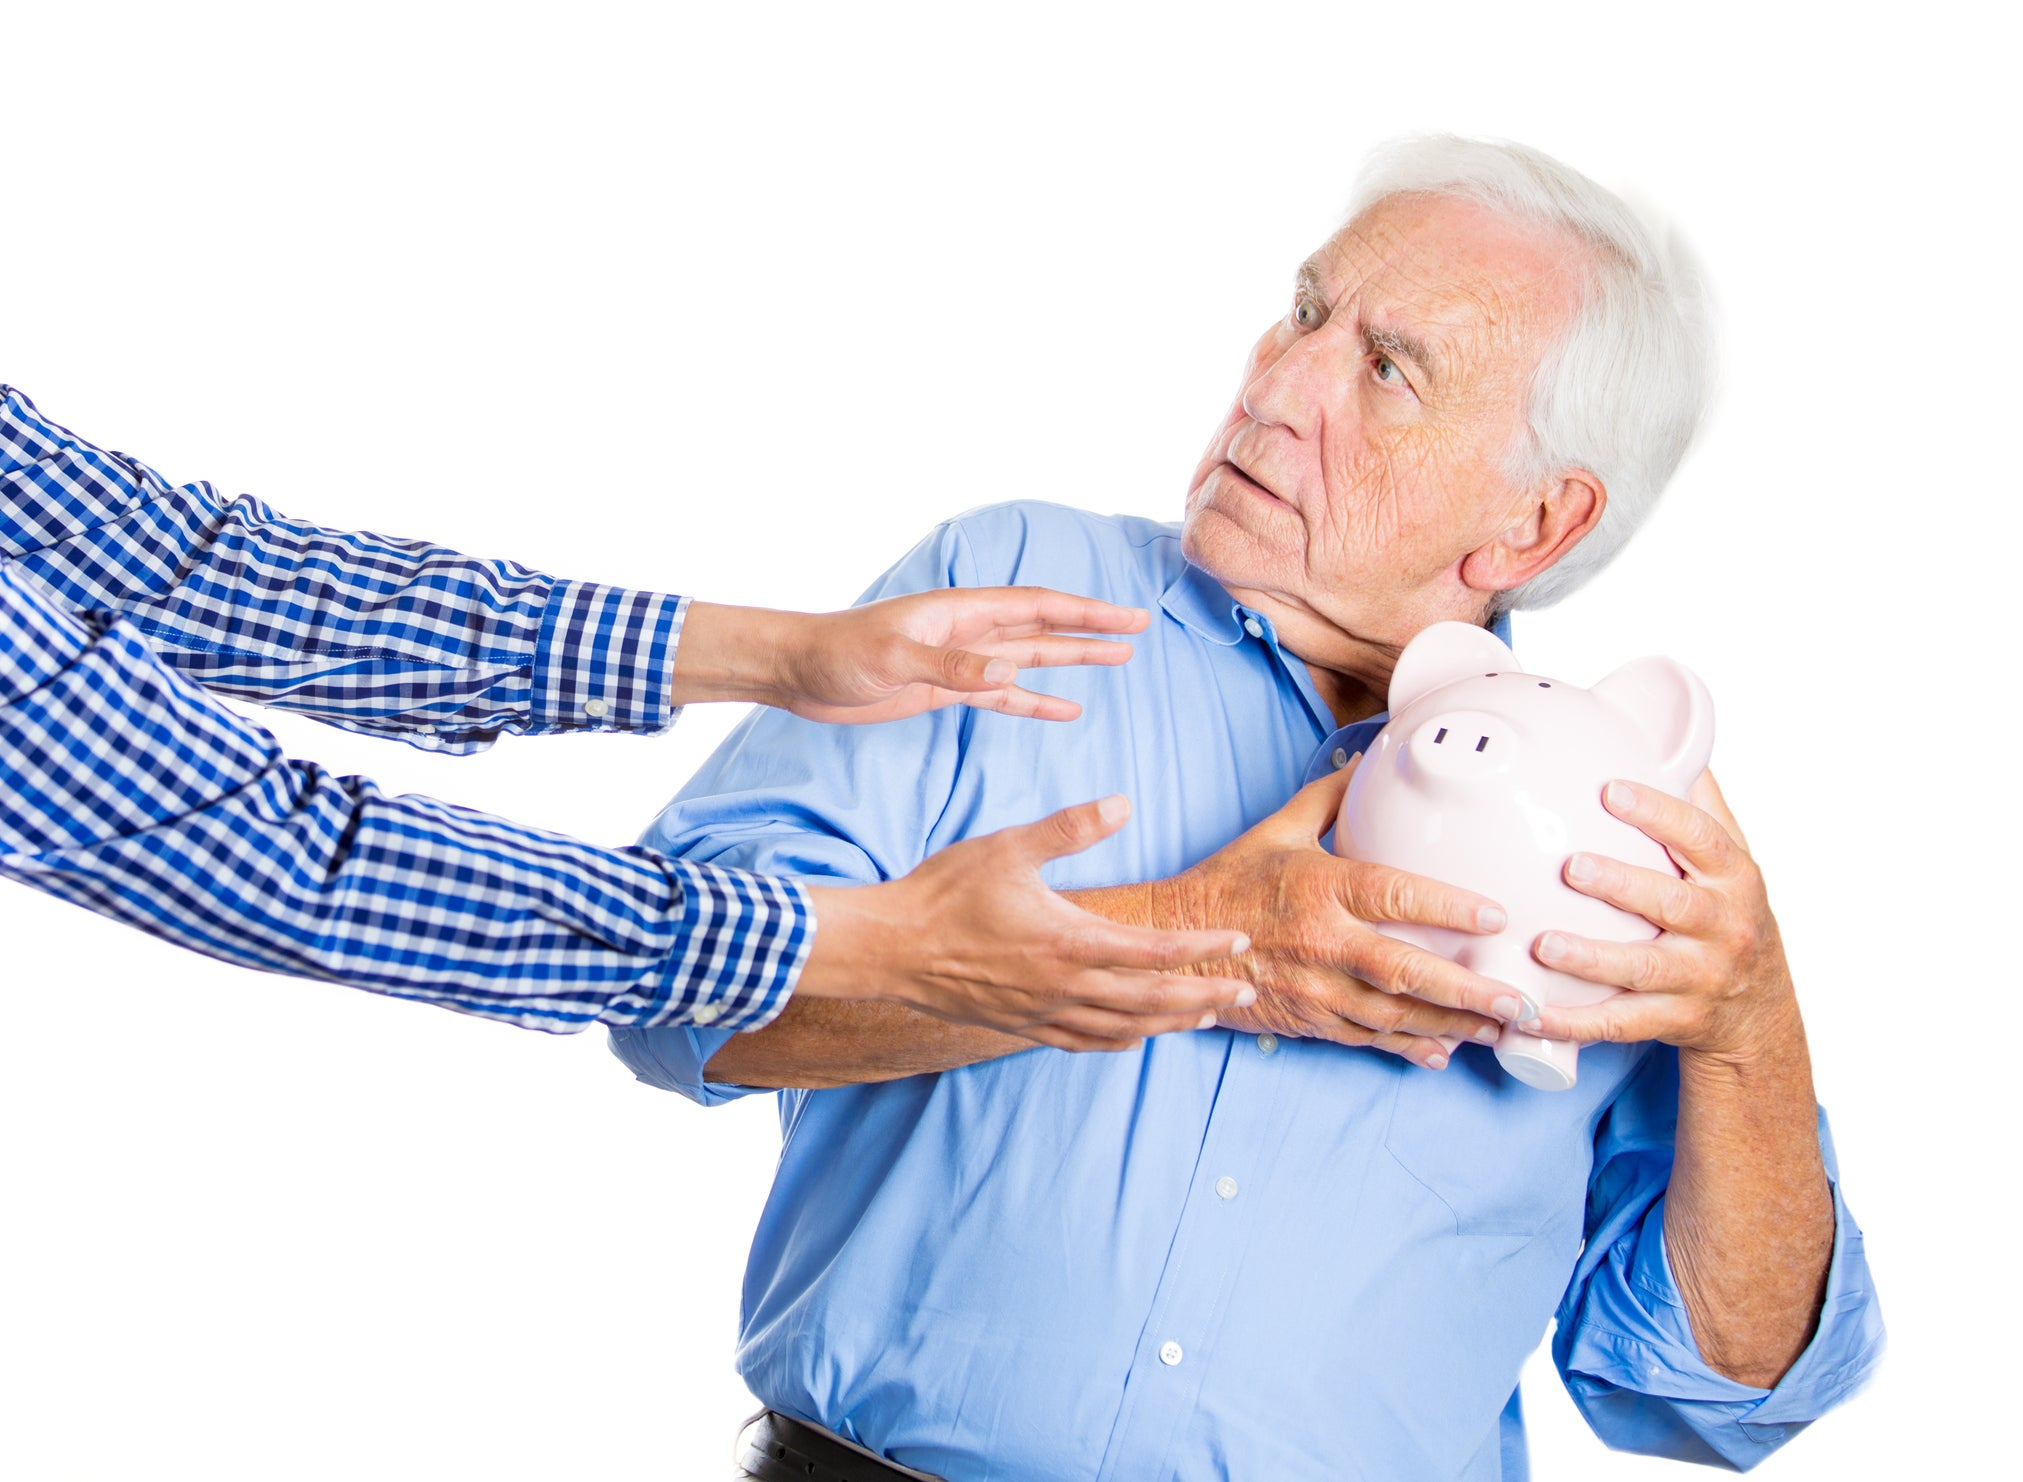 Retirees: Social Security Benefits Are Replacing Less Income